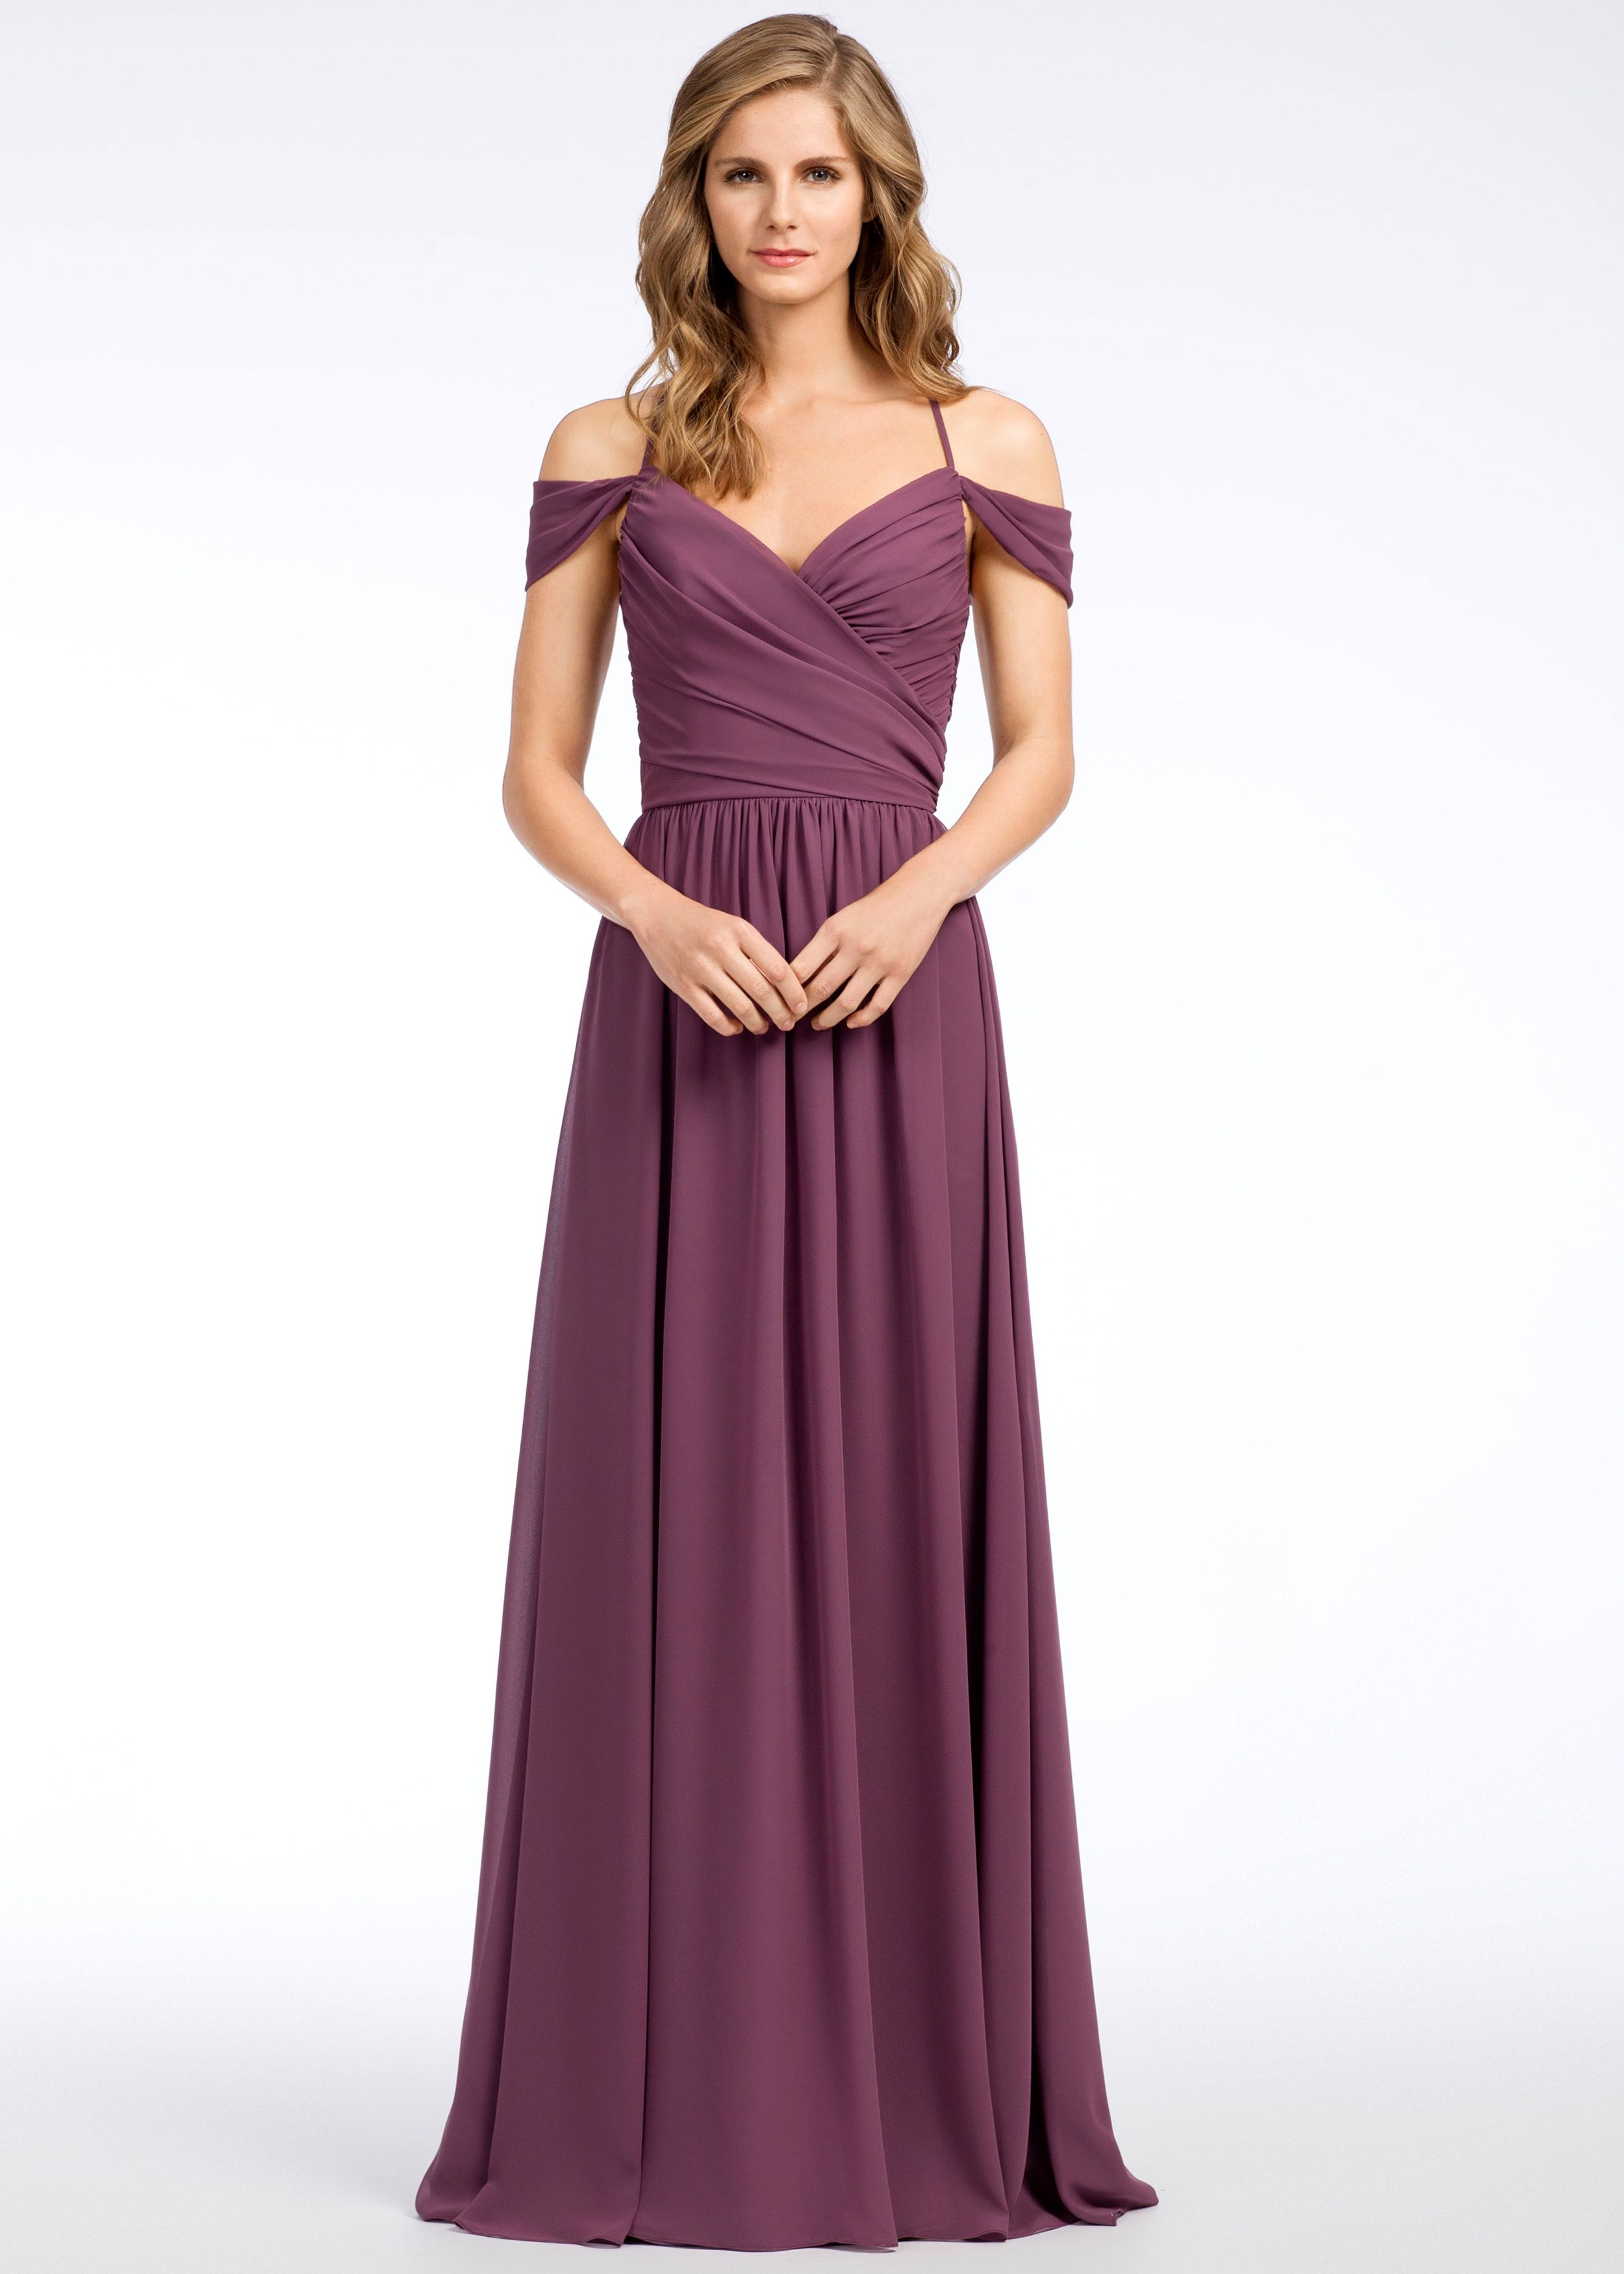 Memphis bridesmaid dresses not another boring bridesmaid dress memphis bridesmaid dresses not another boring bridesmaid dress nabbd ombrellifo Gallery